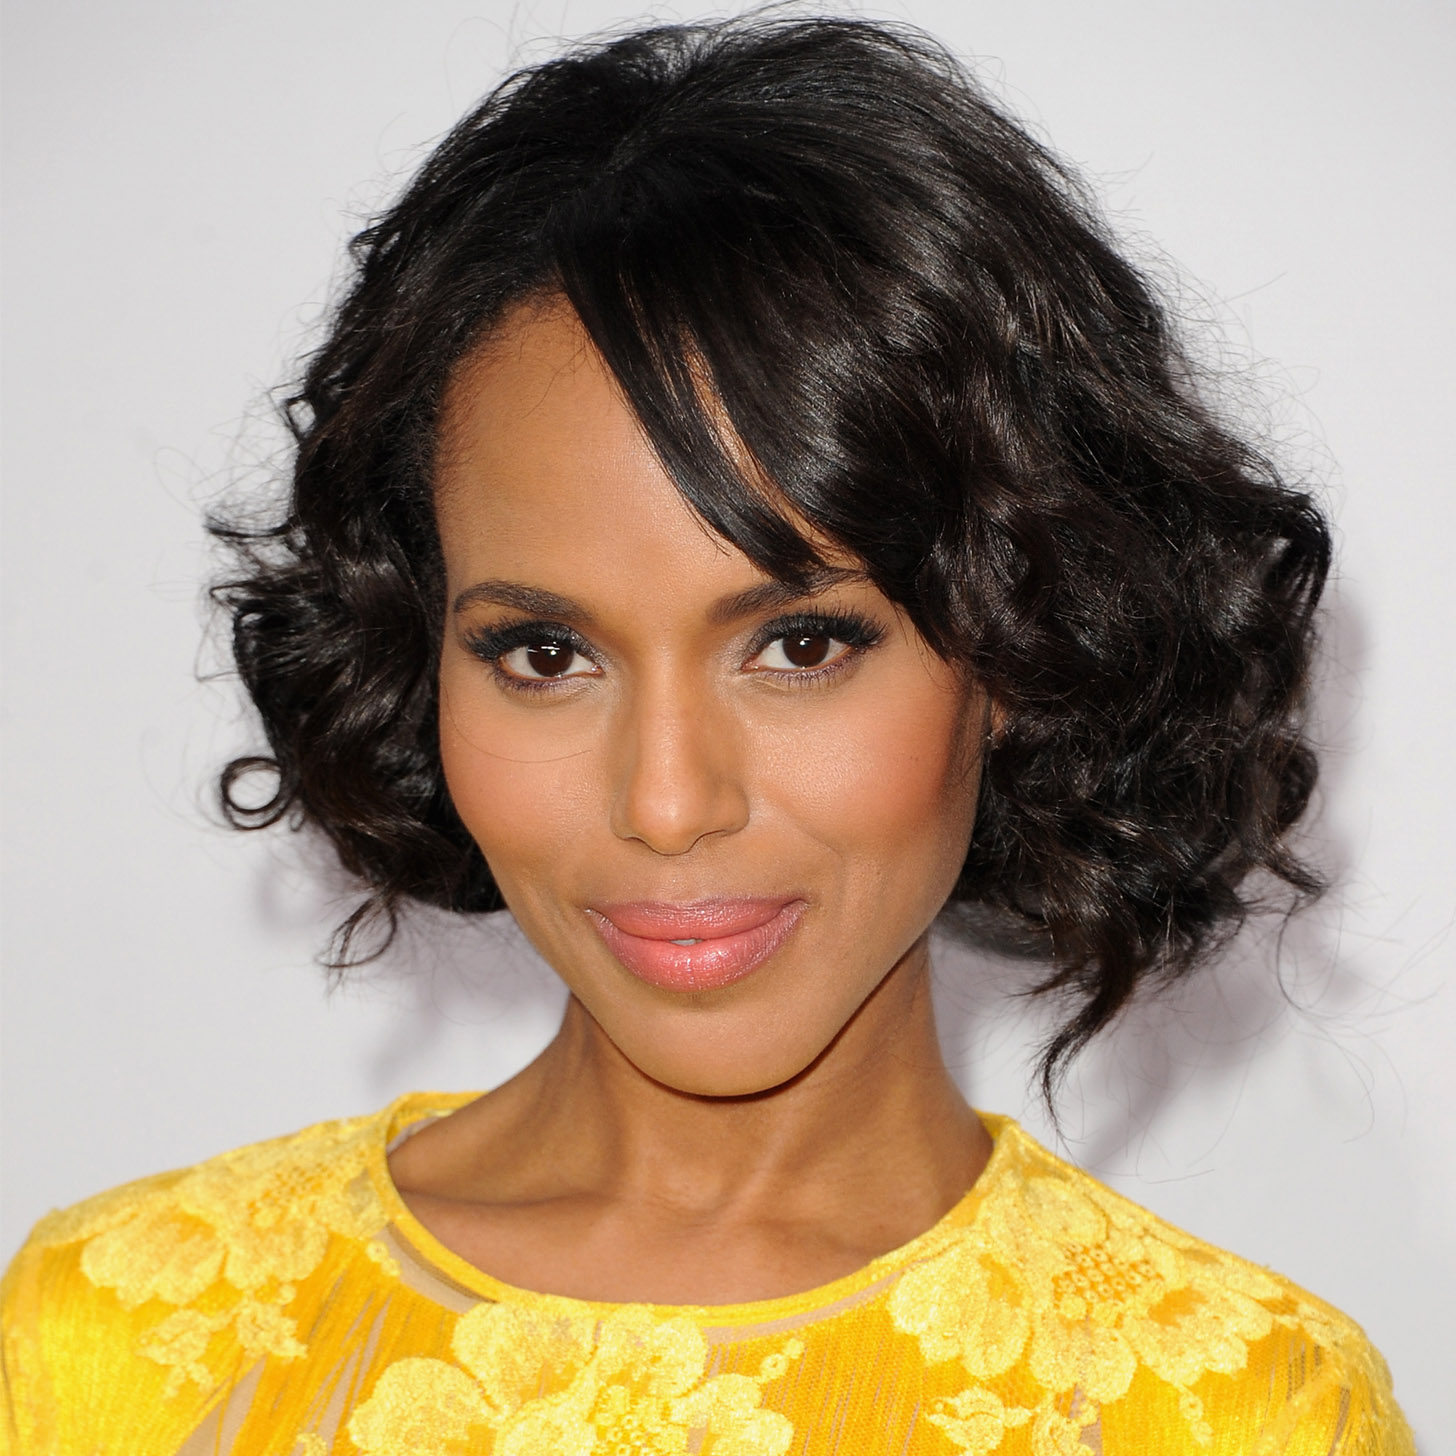 Kerry Washington earned a  million dollar salary, leaving the net worth at 8 million in 2017